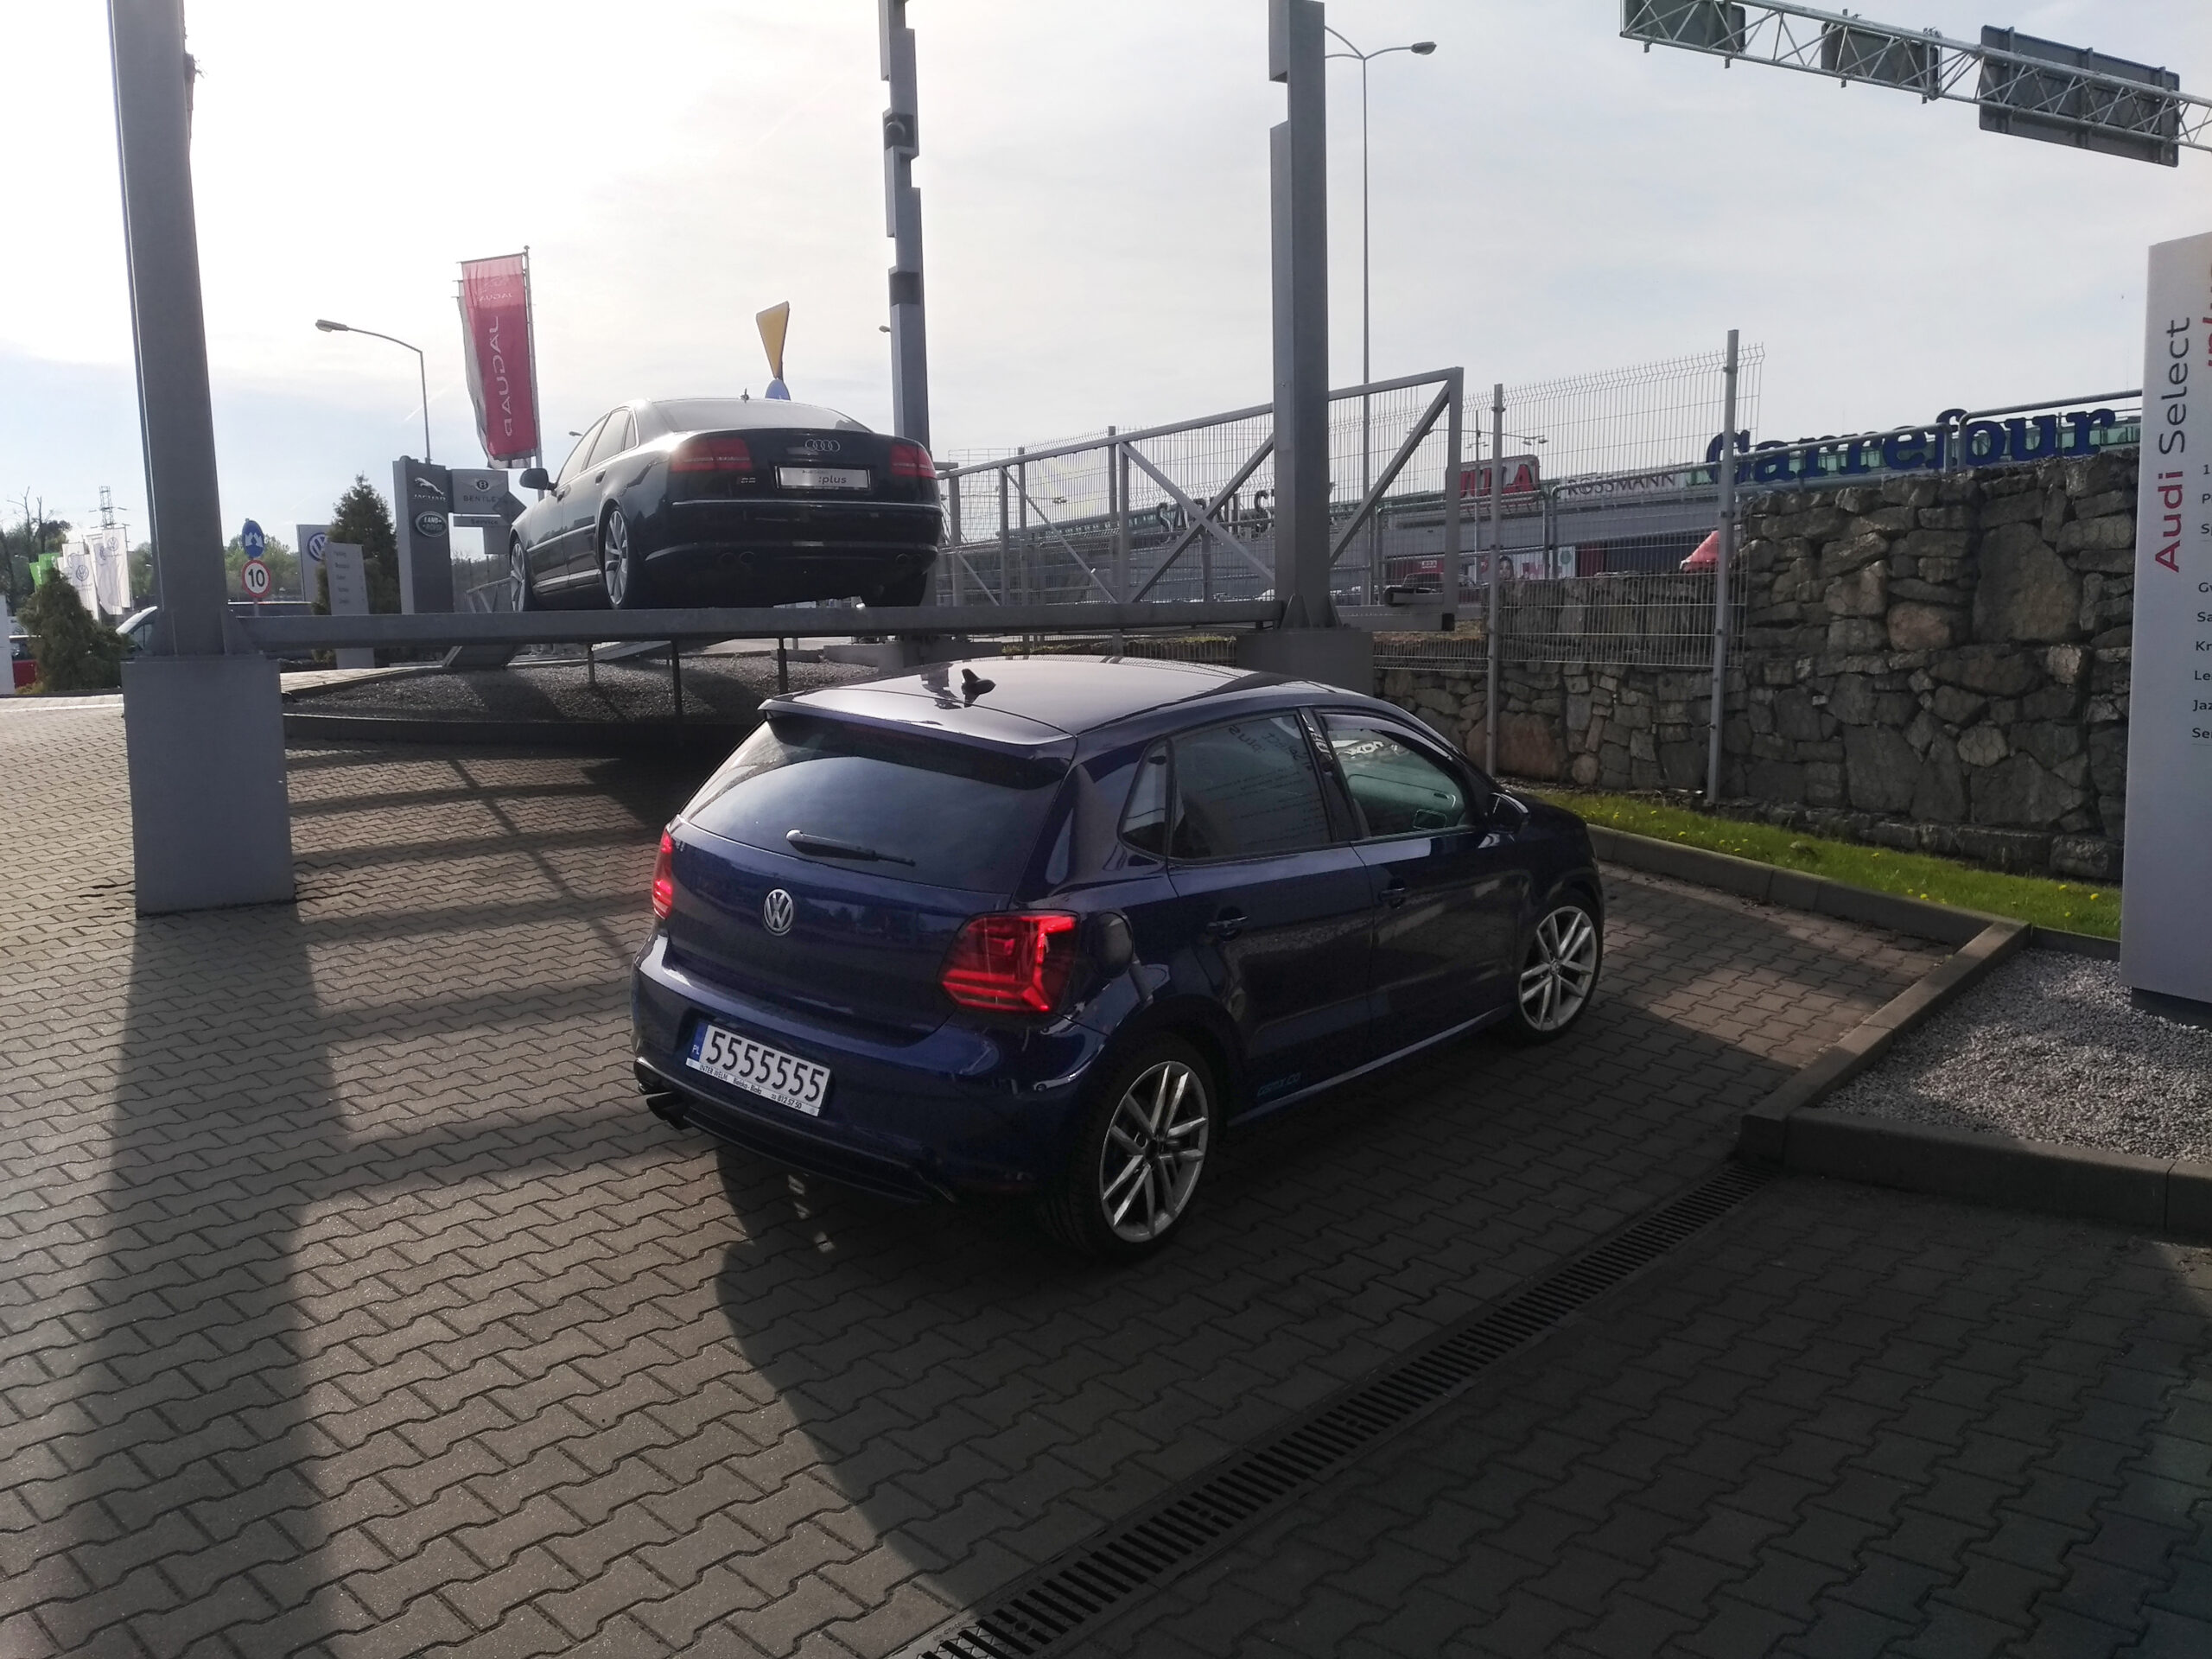 R-Line roof spoiler — Polo 6R R-Line / GTI / BlueGT/6C R-Line   P 20180427 172116 vHDR On Photoshop scaled